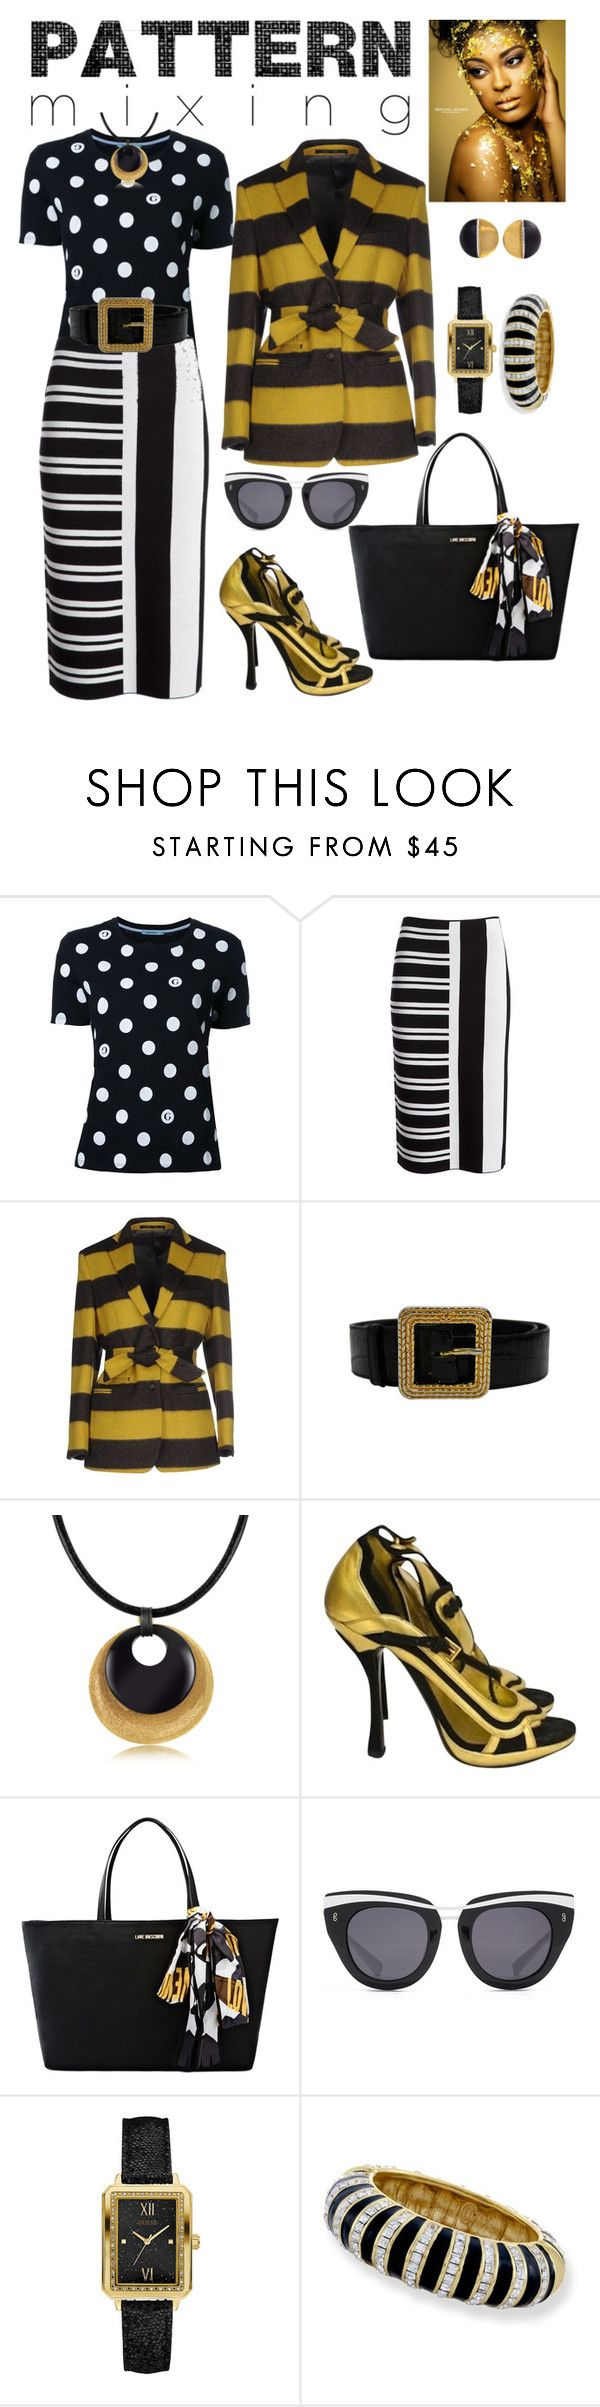 """BLACK, WHITE, & GOLD"" by carolsha ❤ liked on Polyvore featuring Guild Prime, Theory, Mauro Grifoni, Chanel, Stefano Patriarchi, Prada, Love Moschino, HOOK LDN and Kenneth Jay Lane"